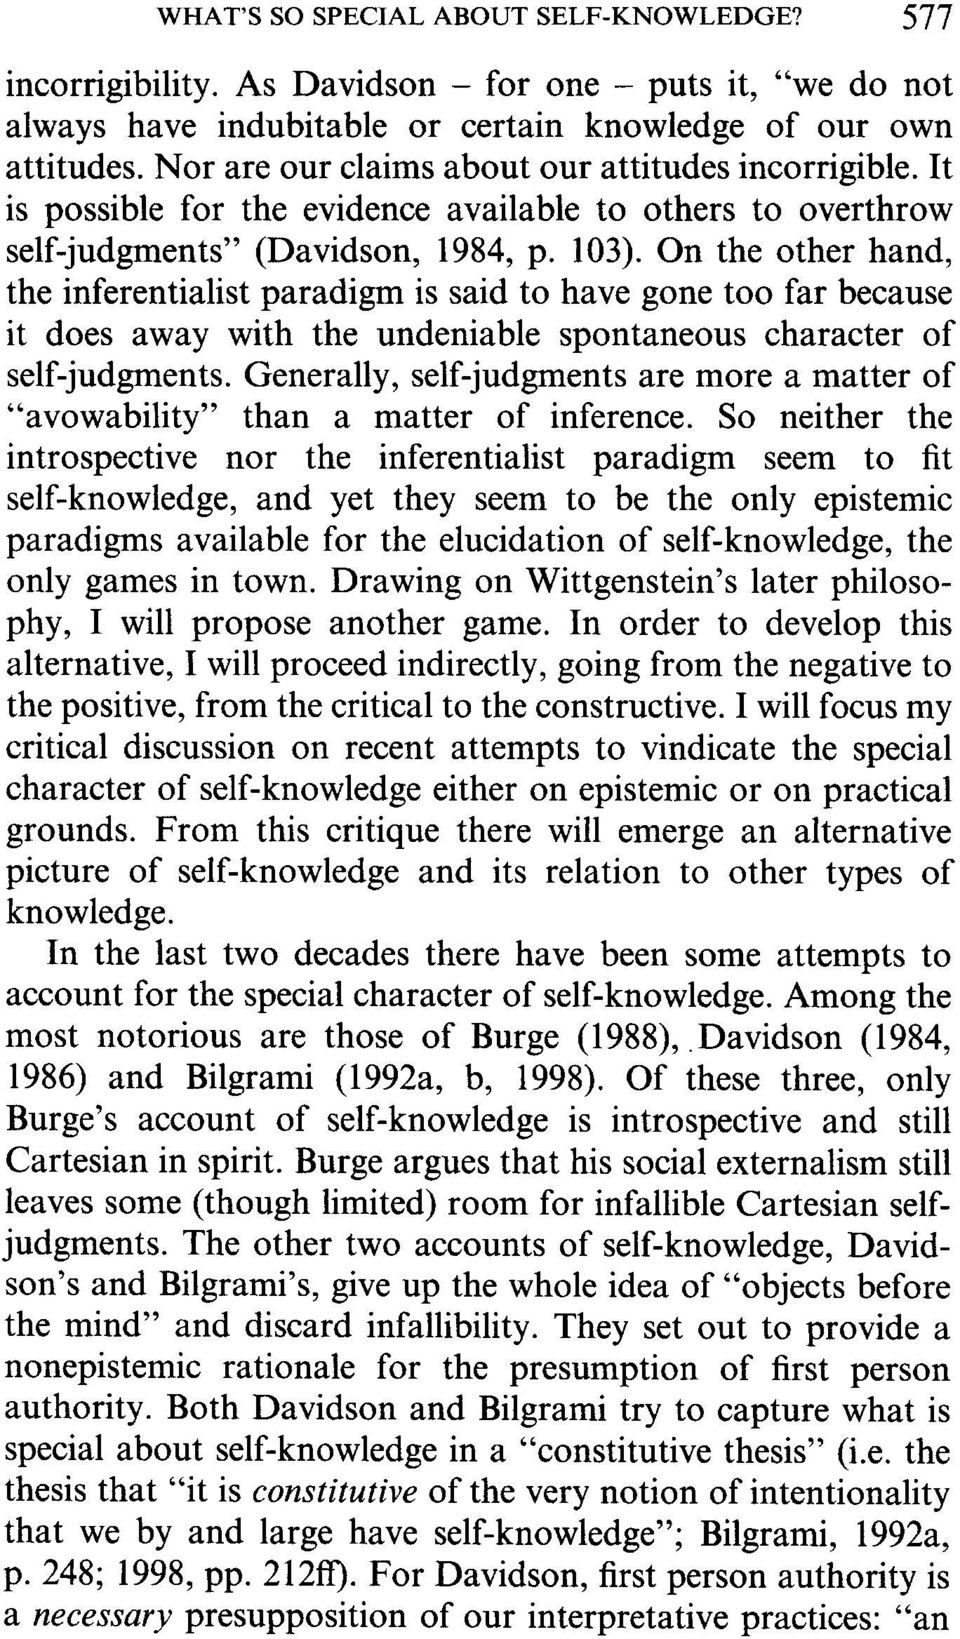 On the other hand, the inferentialist paradigm is said to have gone too far because it does away with the undeniable spontaneous character of self-judgments.